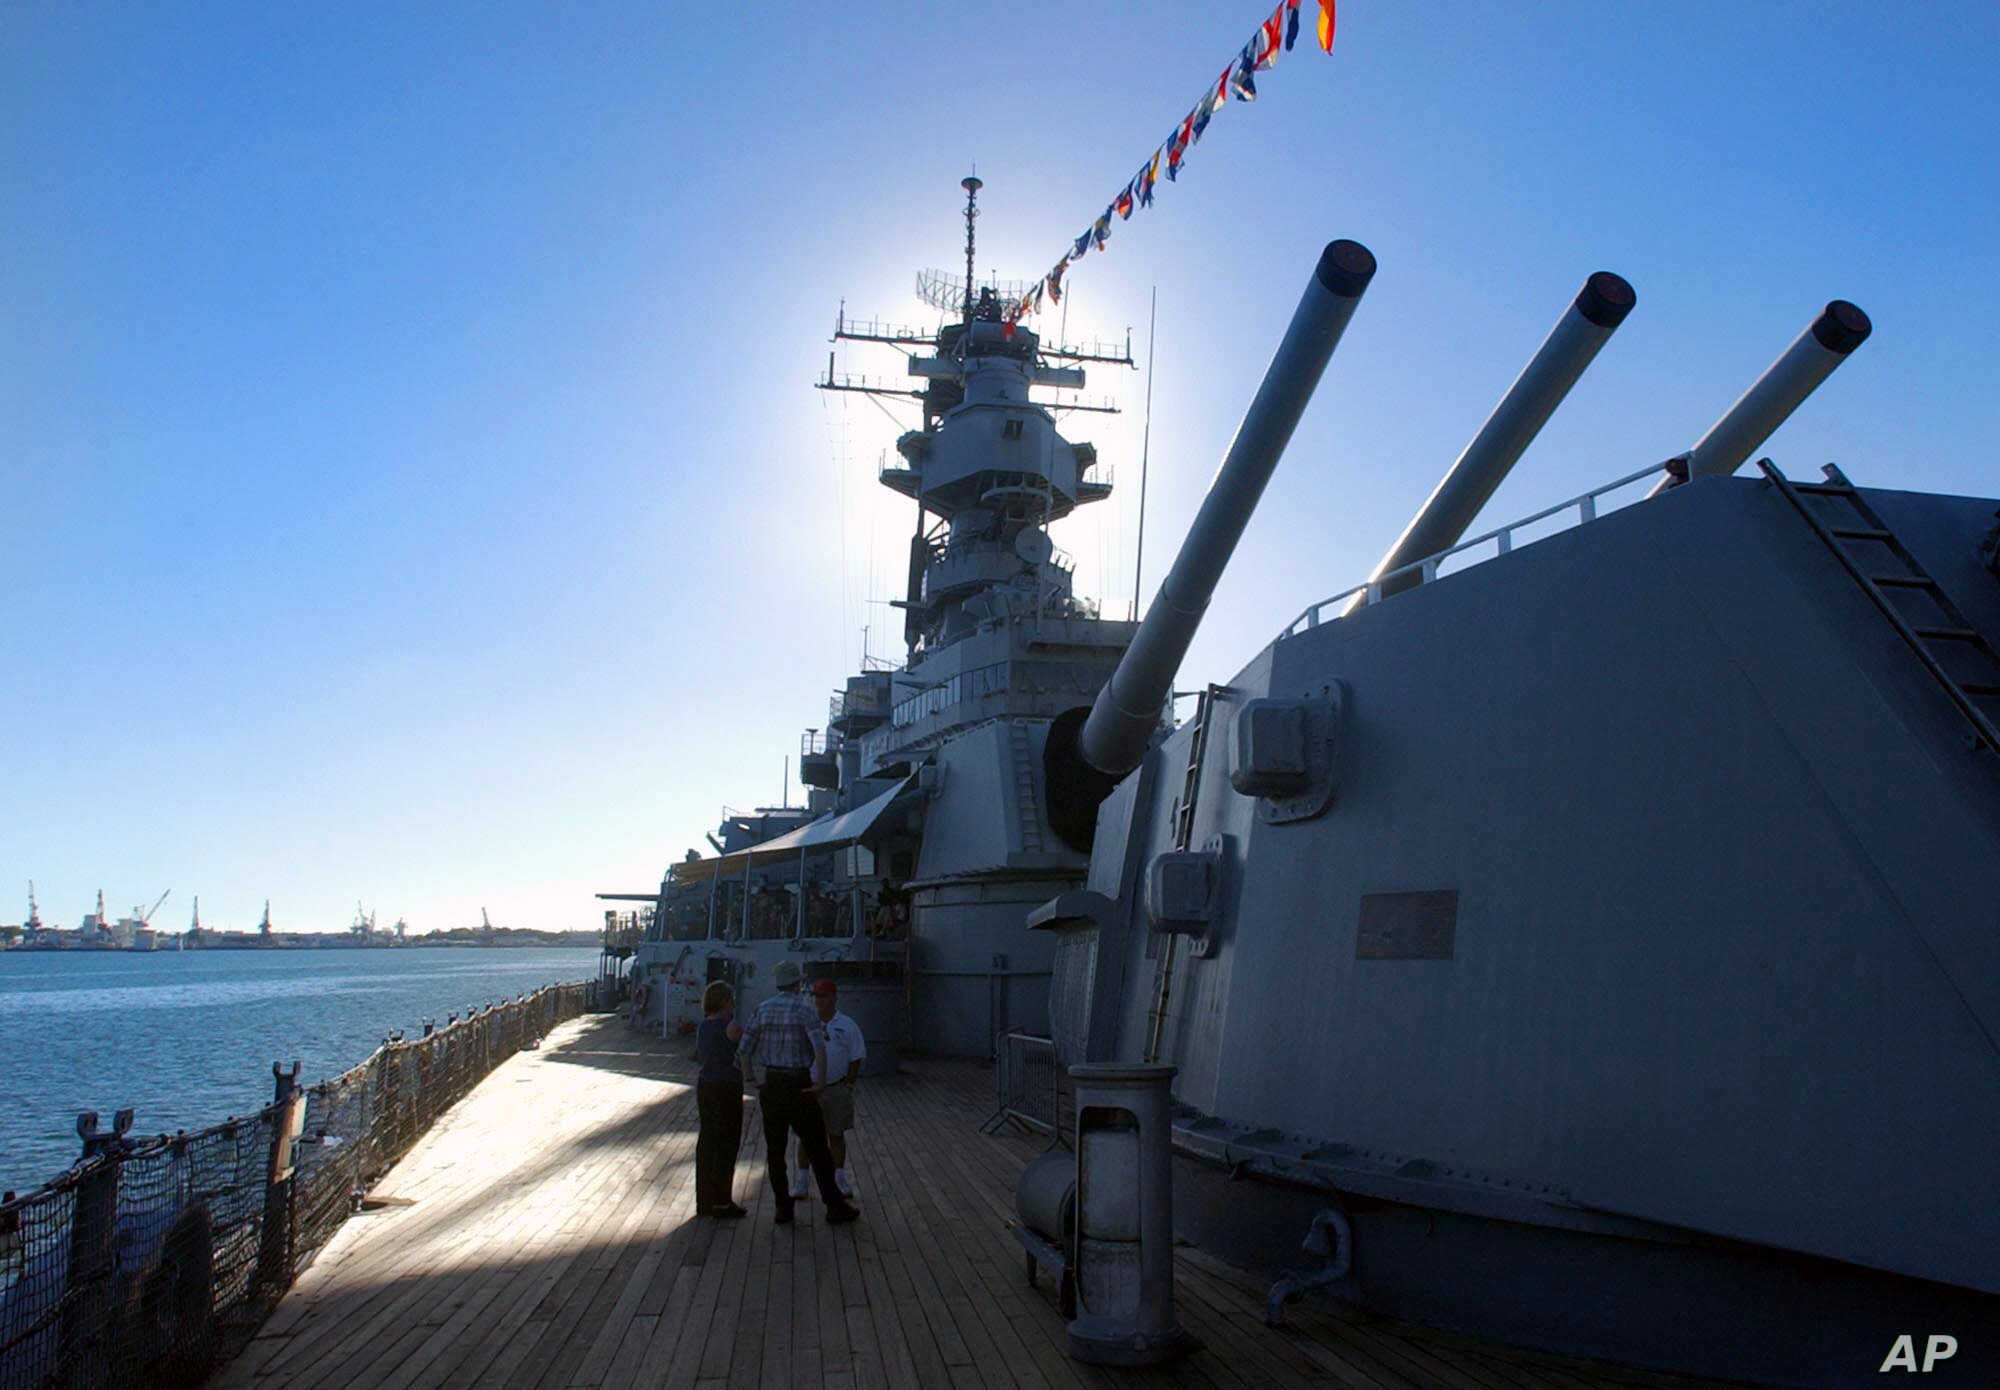 USS Missouri Undergoes Restoration Ahead of War Anniversary